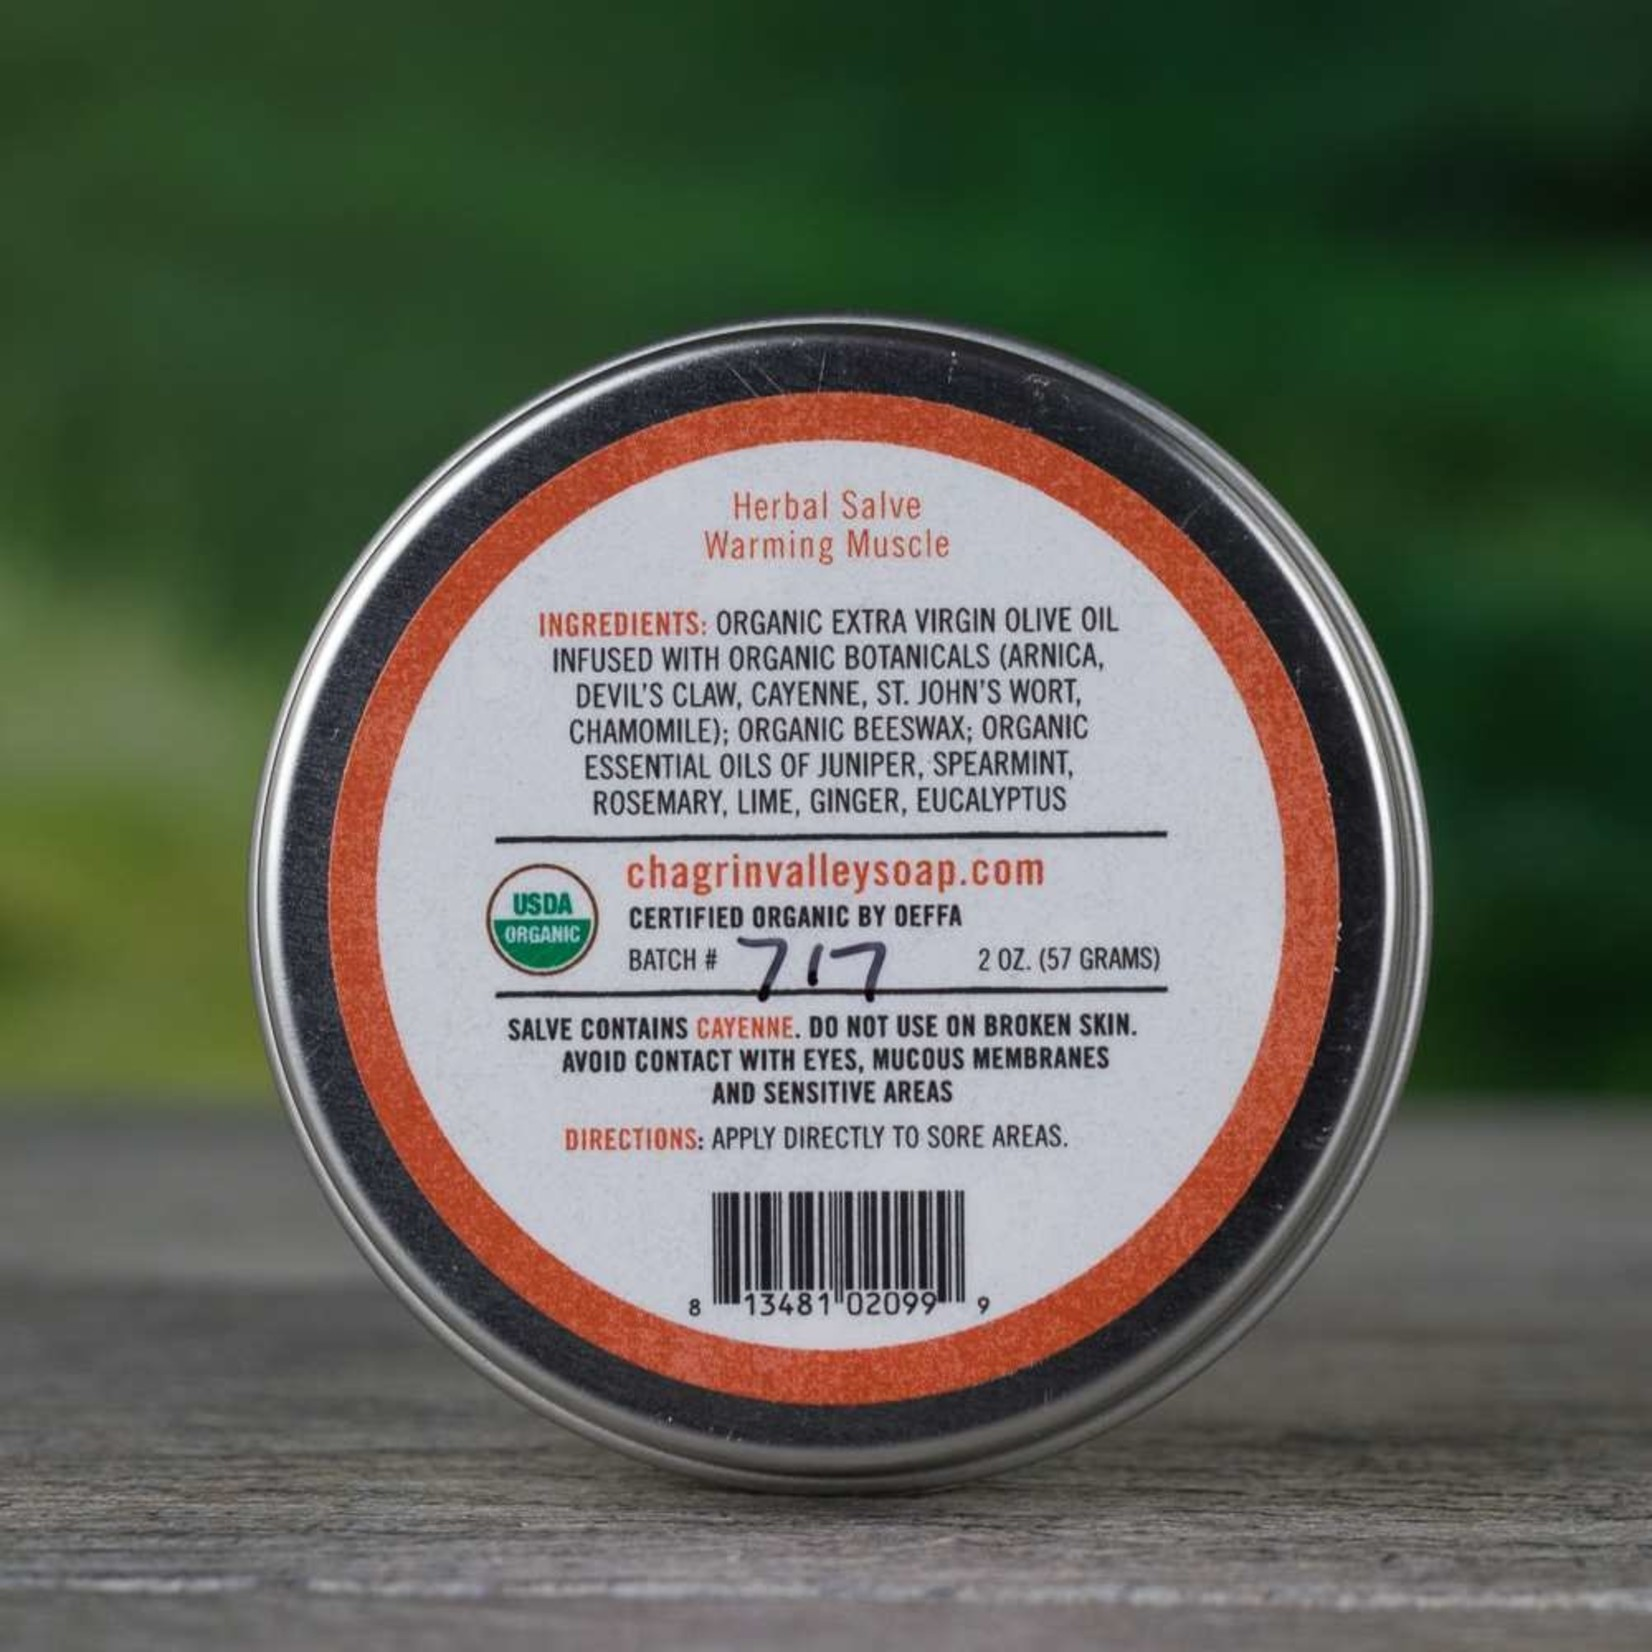 Chagrin Valley Soap and Salve Warming Muscle Herbal Salve 2oz tin